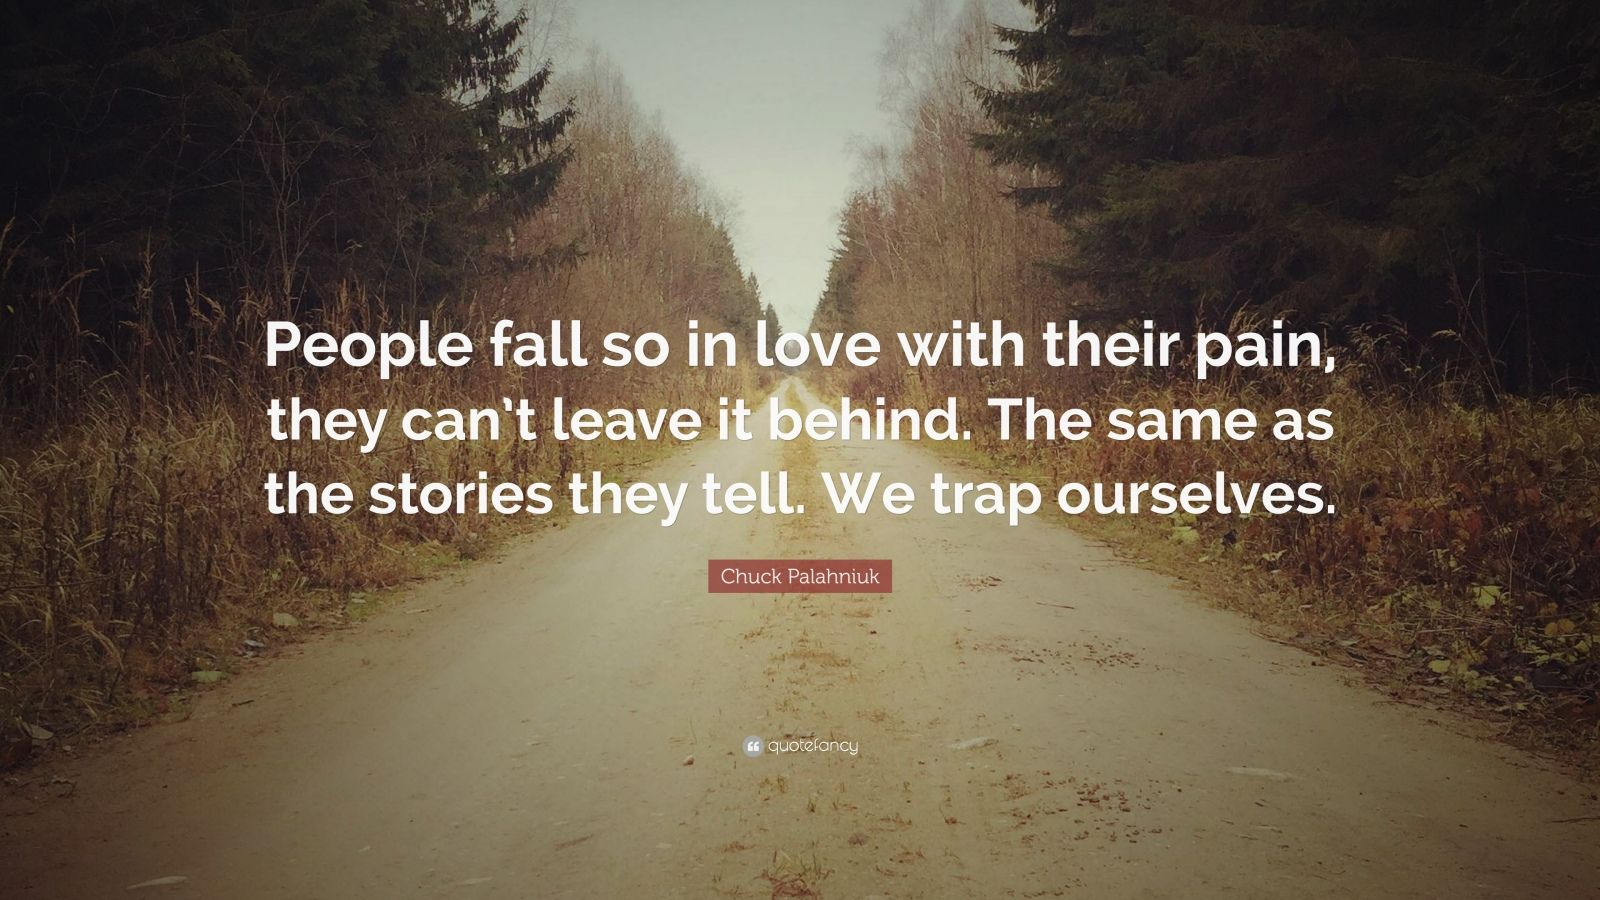 """Chuck Palahniuk Quote: """"People fall so in love with their pain, they can't leave it behind. The same as the stories they tell. We trap ourselves."""""""